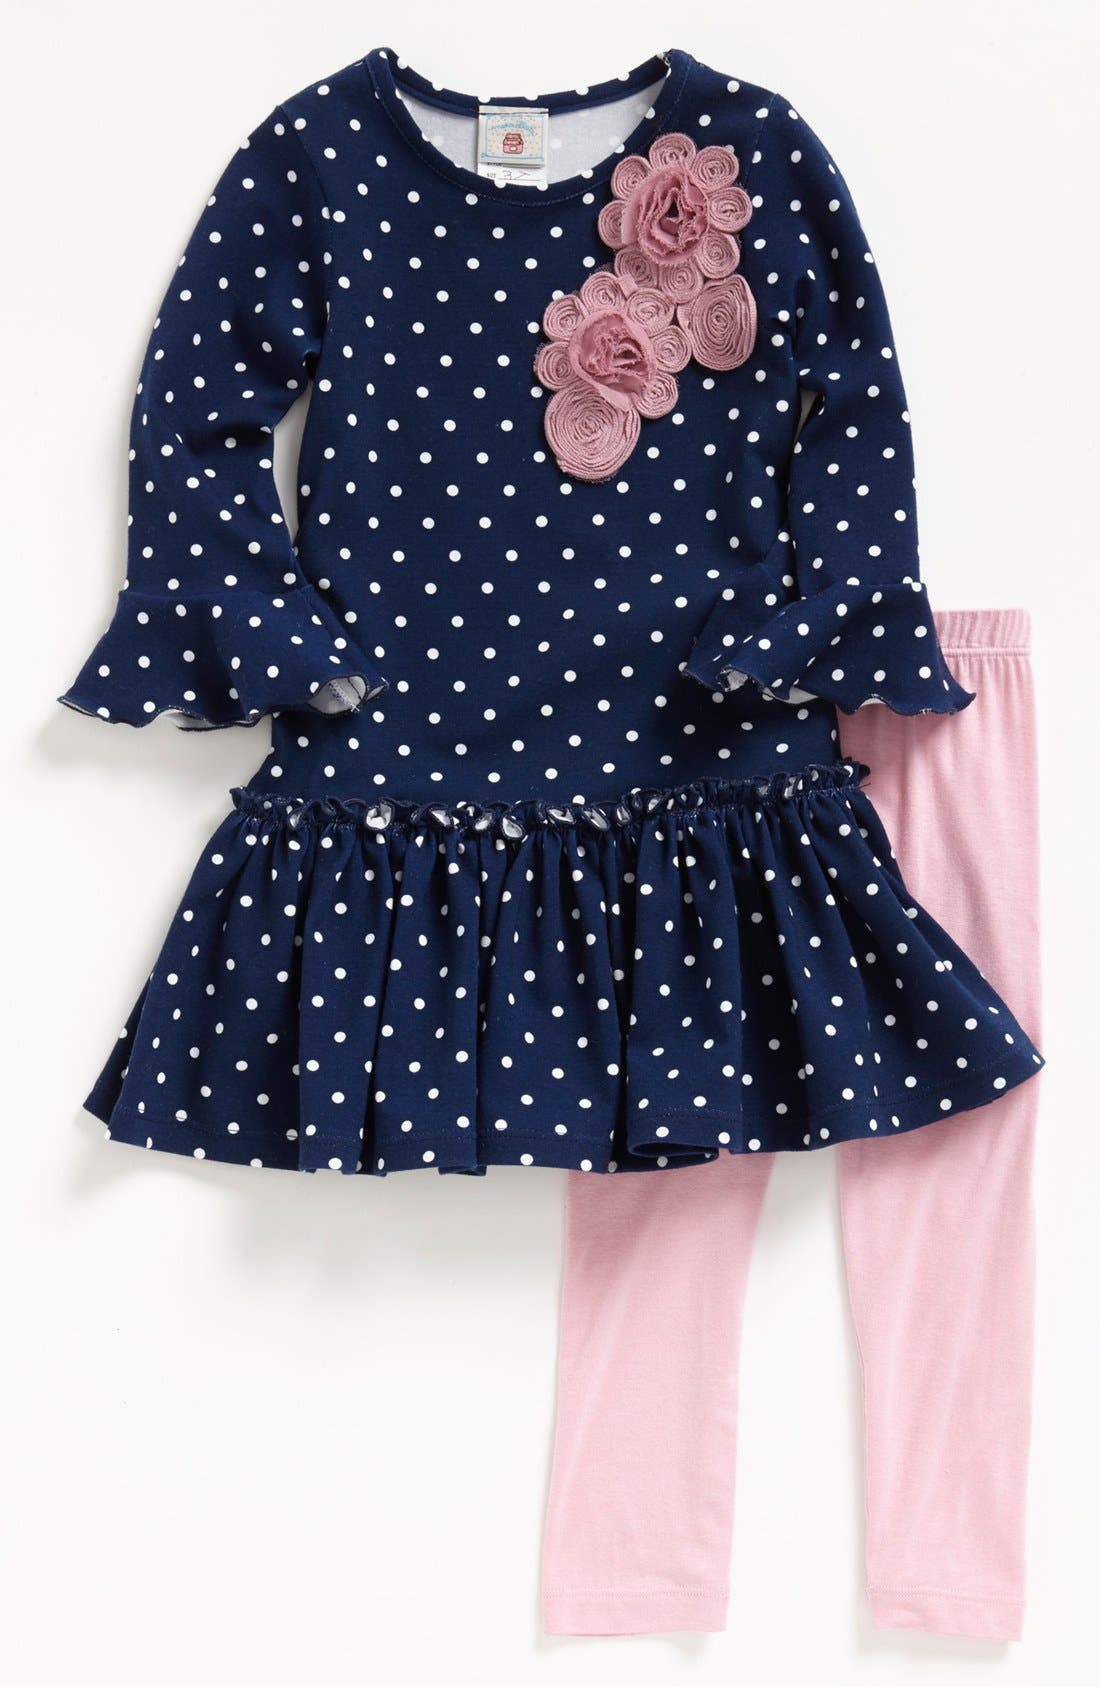 Alternate Image 1 Selected - Pippa & Julie Polka Dot Tunic & Leggings (Toddler Girls)